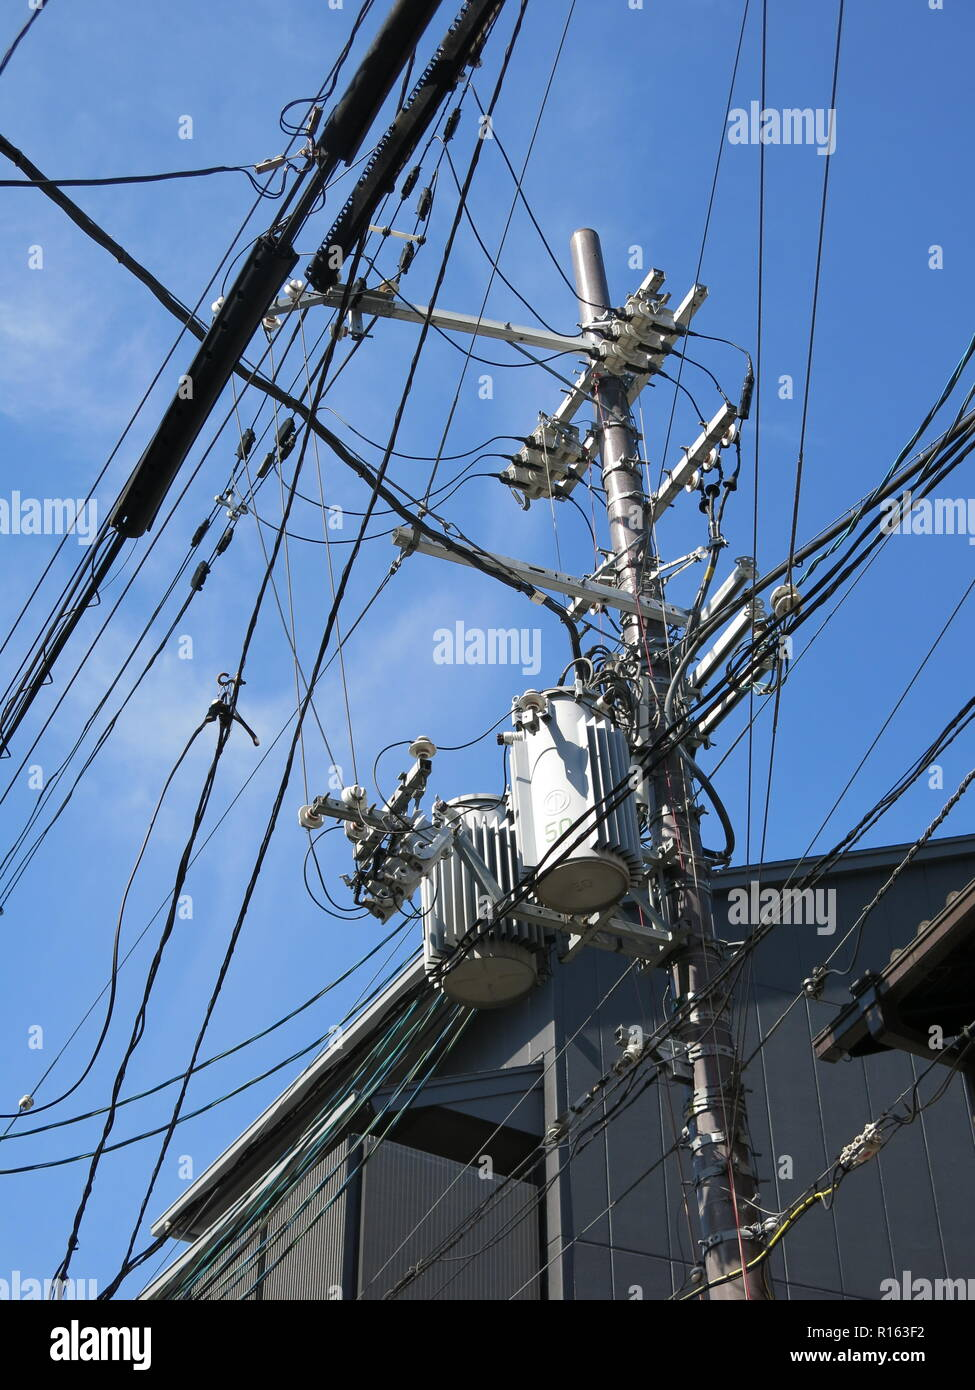 Street scene with a mass of tangled wires and cables at the top of an electricity pylon, Kyoto, Japan; underground cabling is not common. - Stock Image